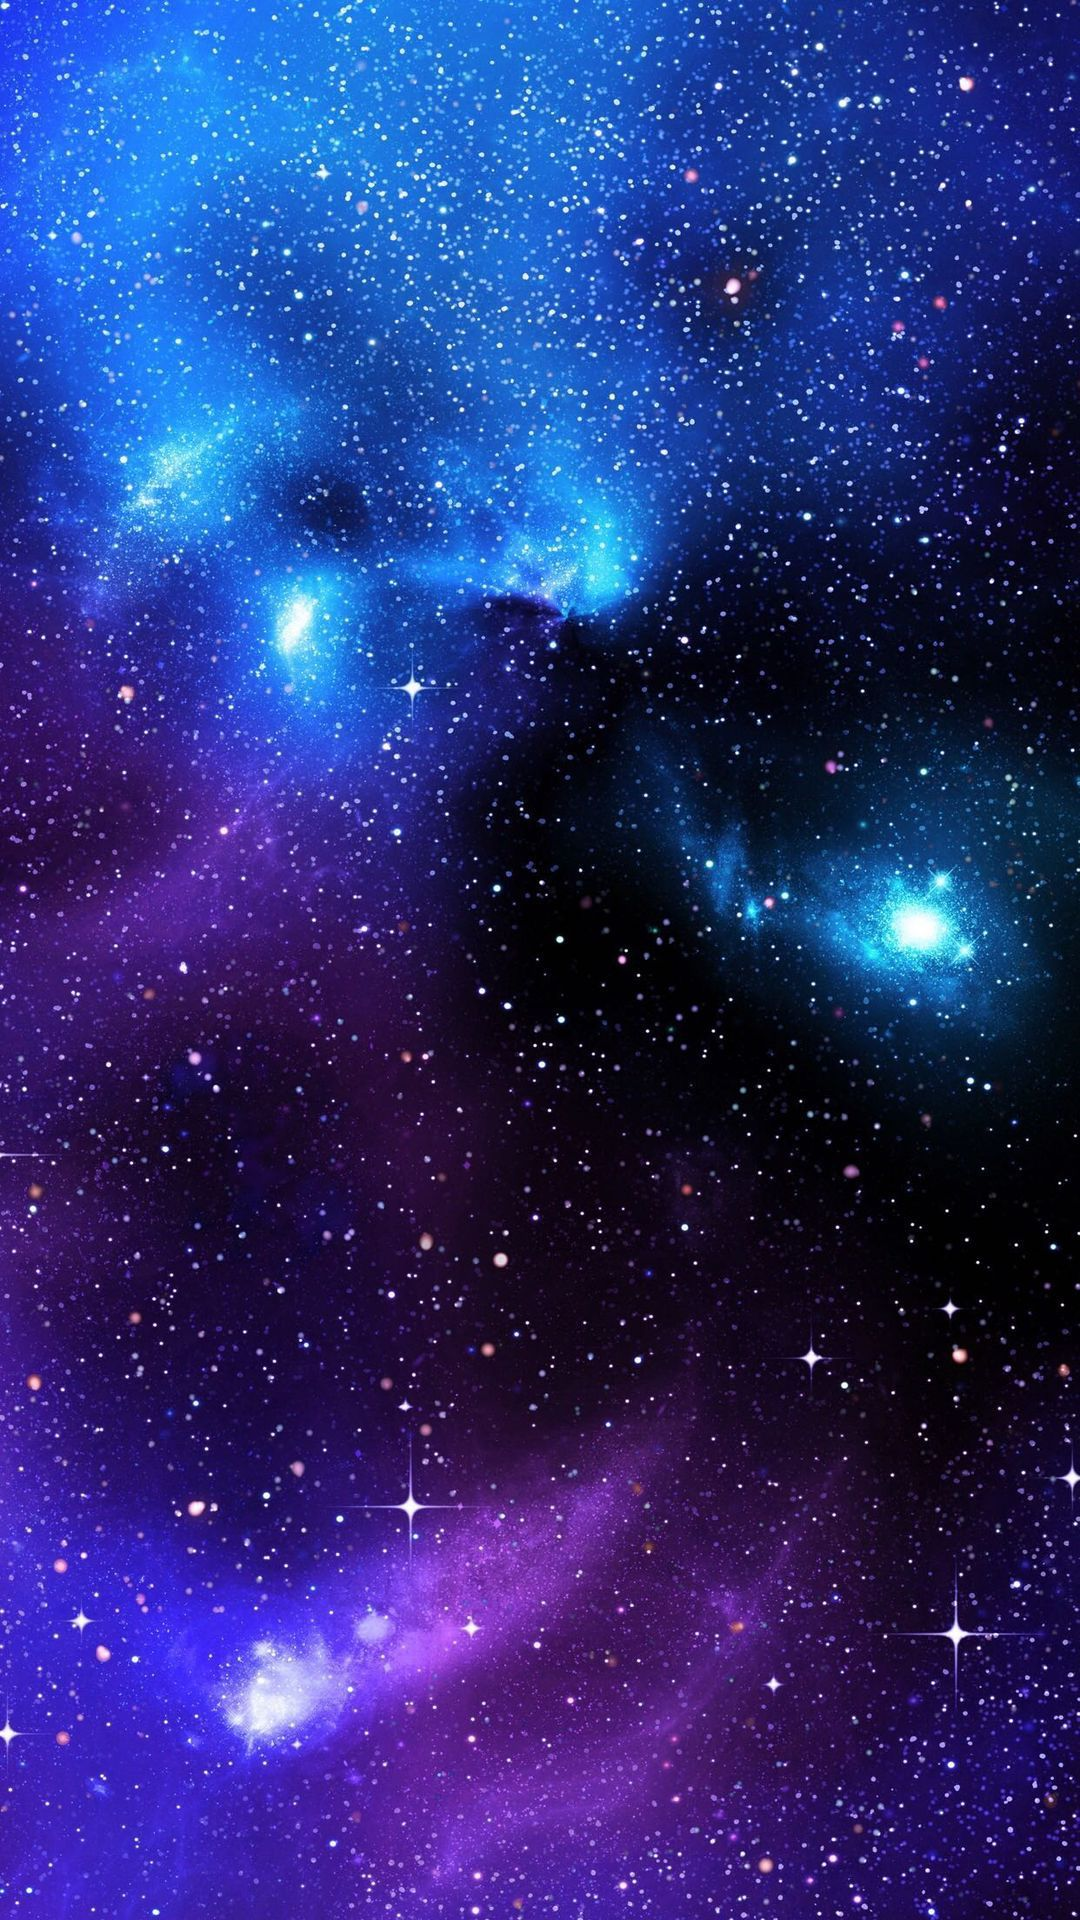 Pin By Xo Love On Phone Wallpapers Galaxy Wallpaper Wallpaper Space Galaxy Background